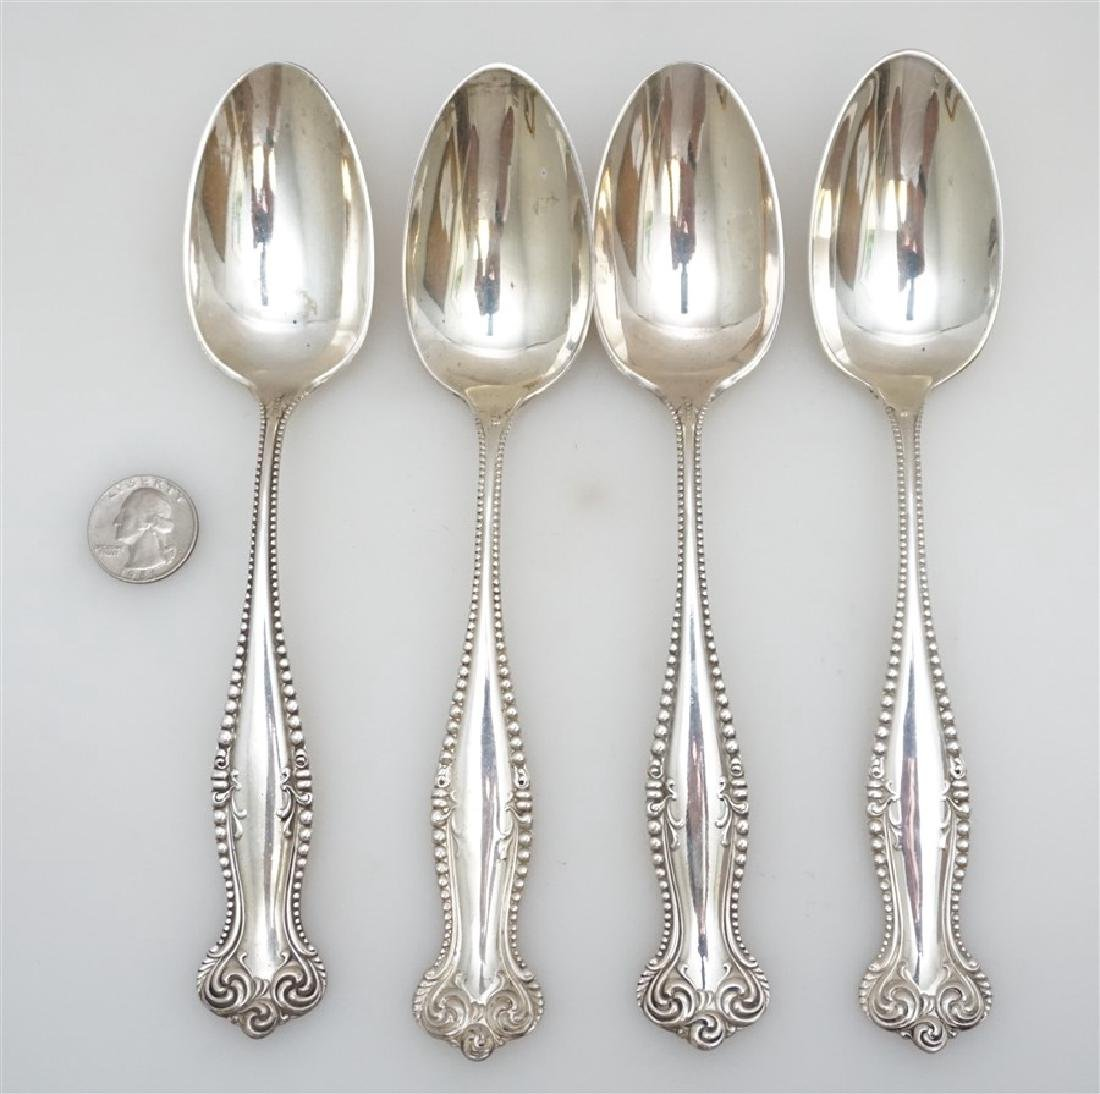 4 STERLING 1893 CANTERBURY SERVING SPOONS TOWLE - 7